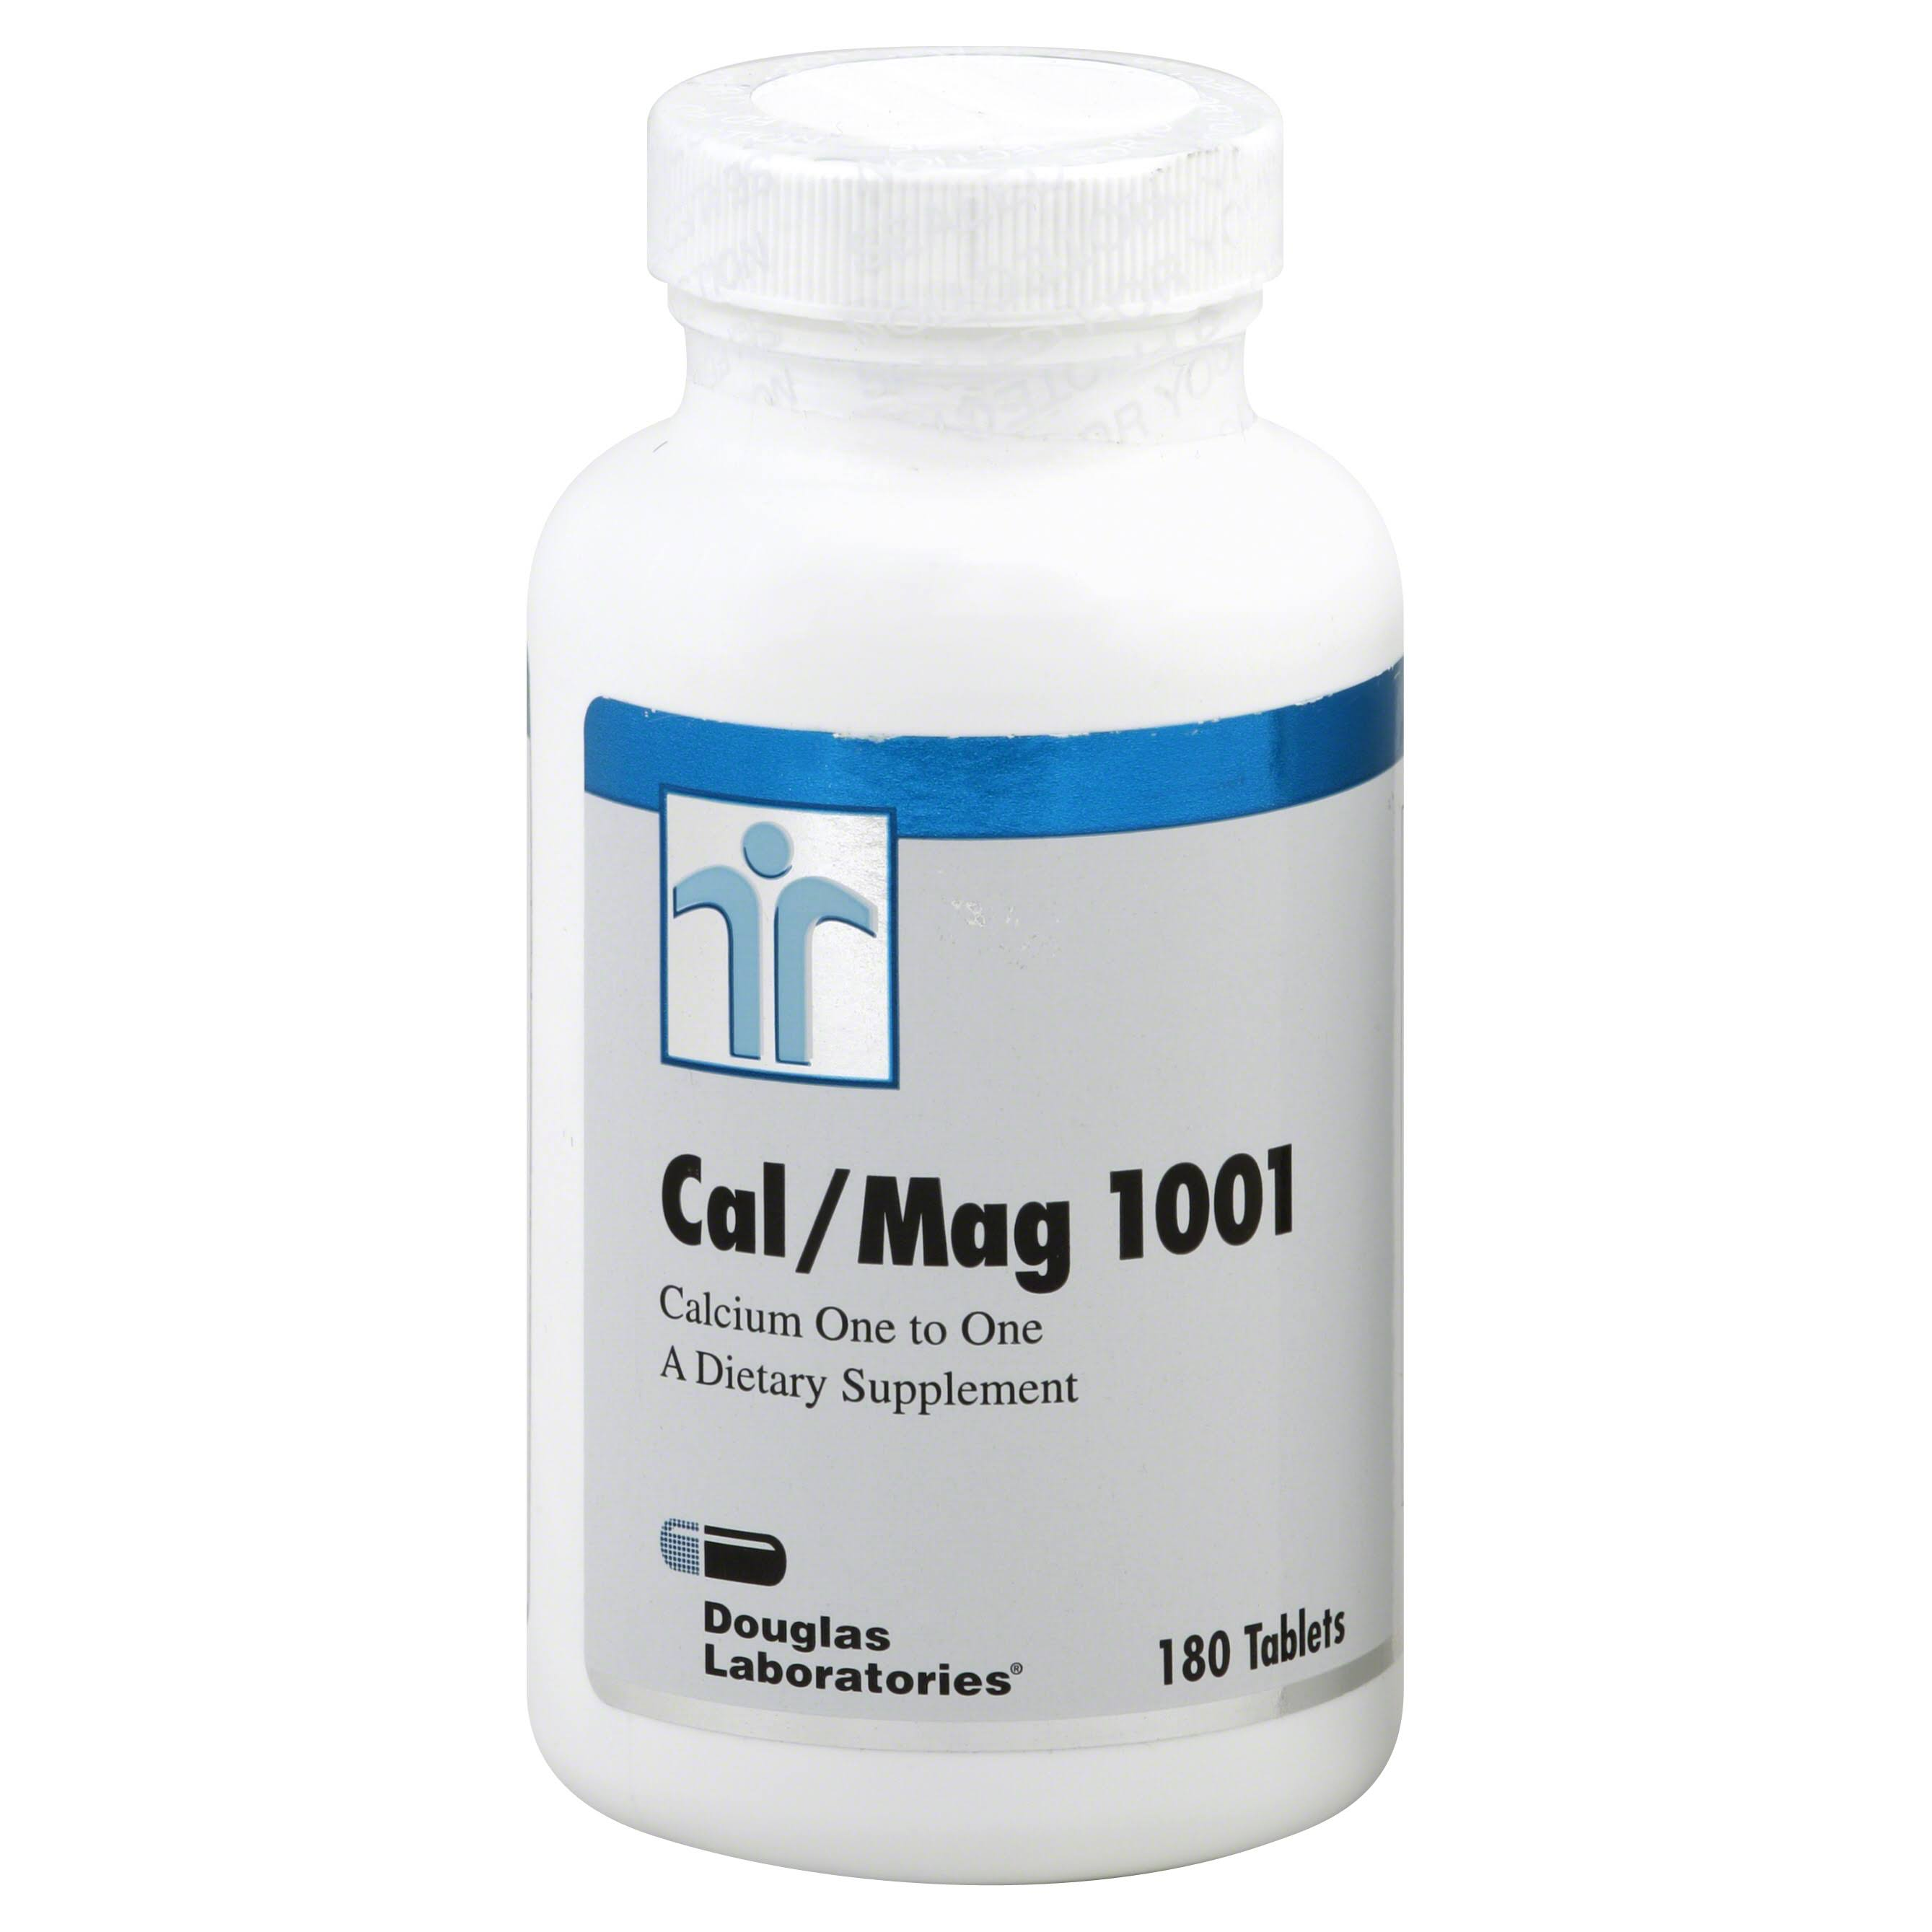 Douglas Laboratories Cal/Mag 1001, Tablets - 180 tablets